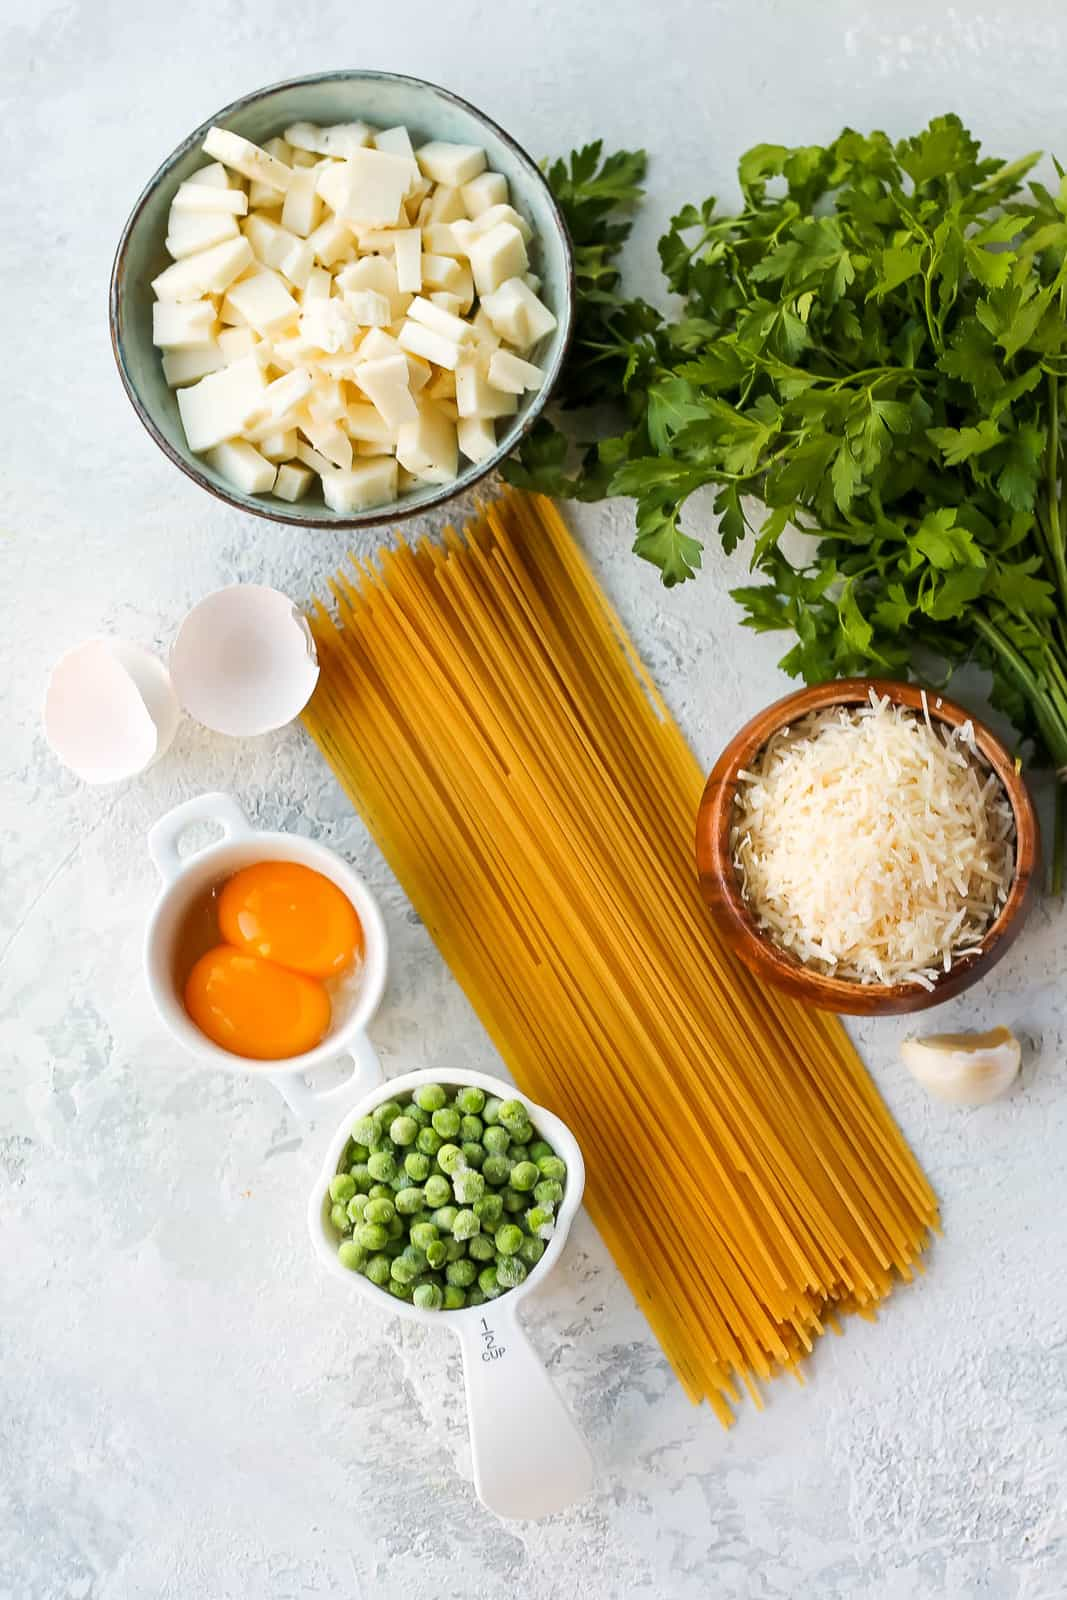 spaghetti, egg yolks, diced halloumi, frozen peas, parmesan cheese, and parsley on a grey background